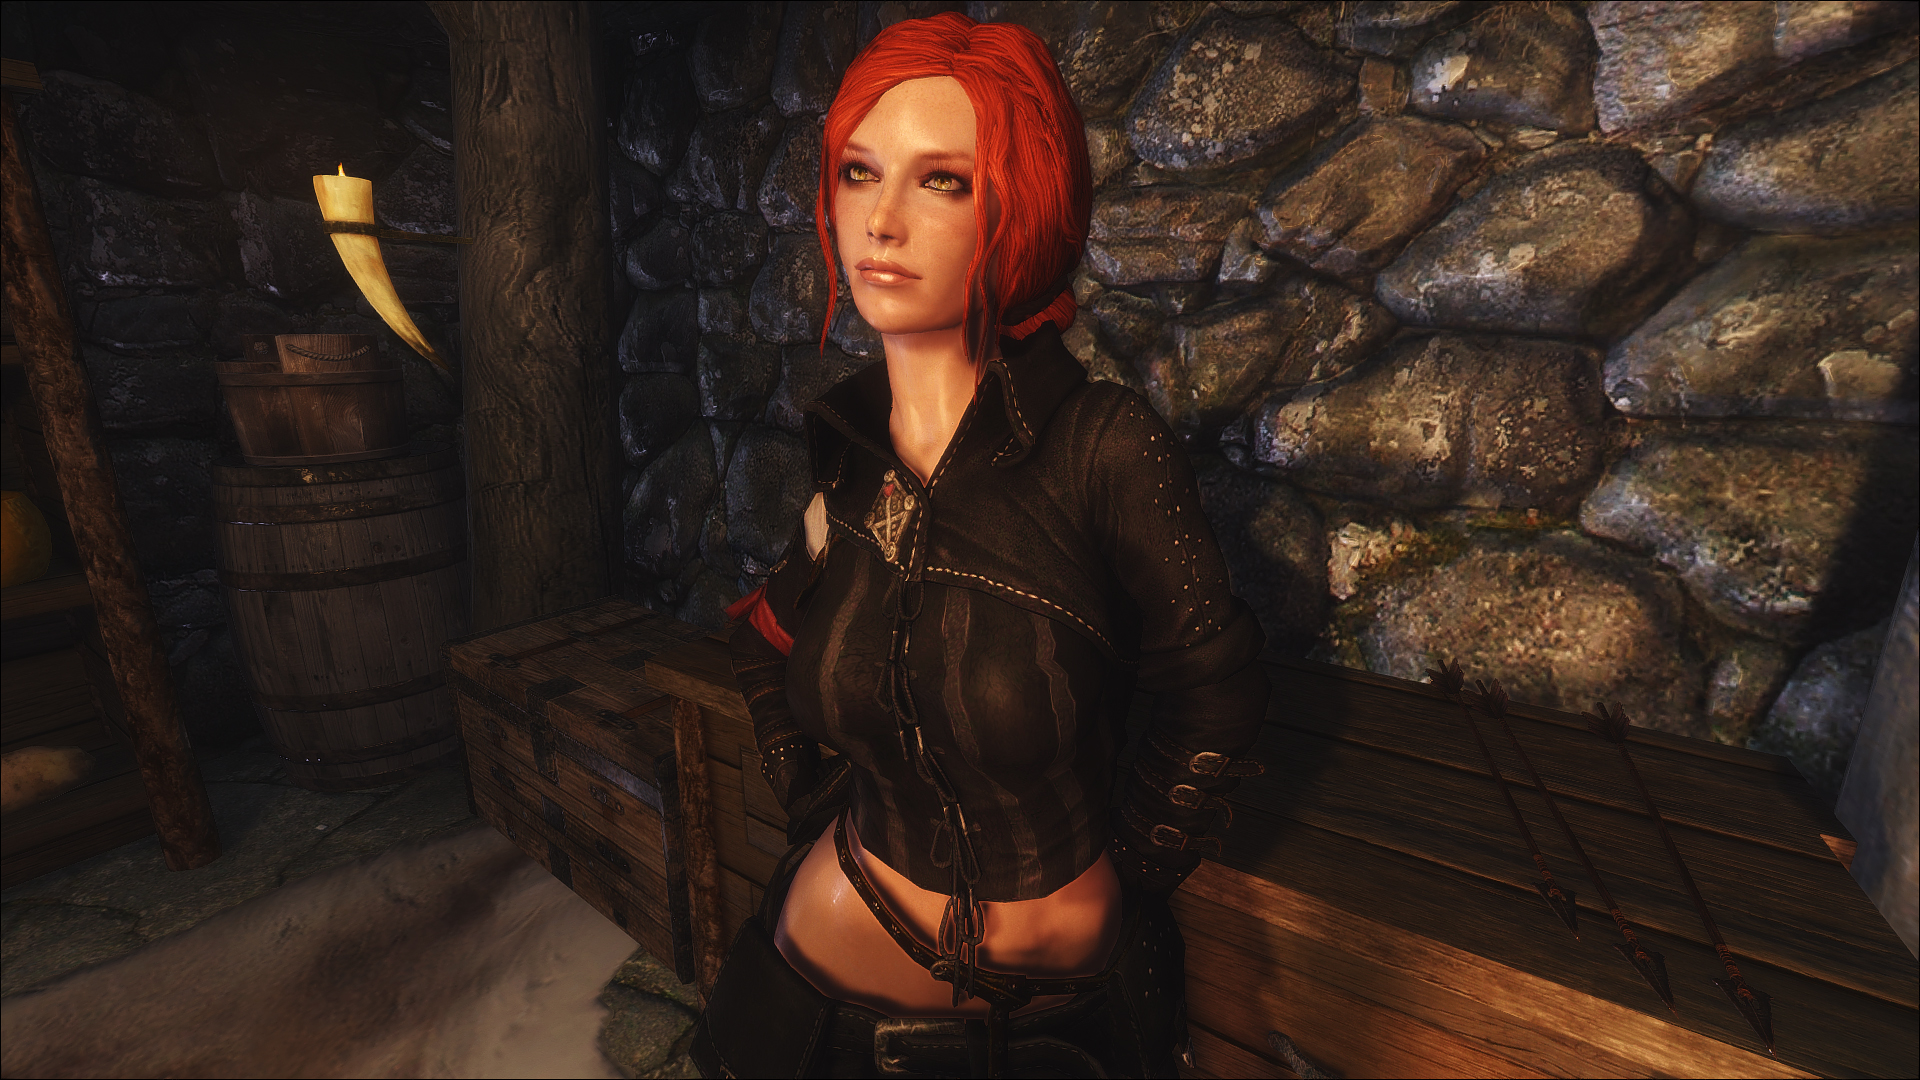 Nude merigold witcher triss 2 doesn't